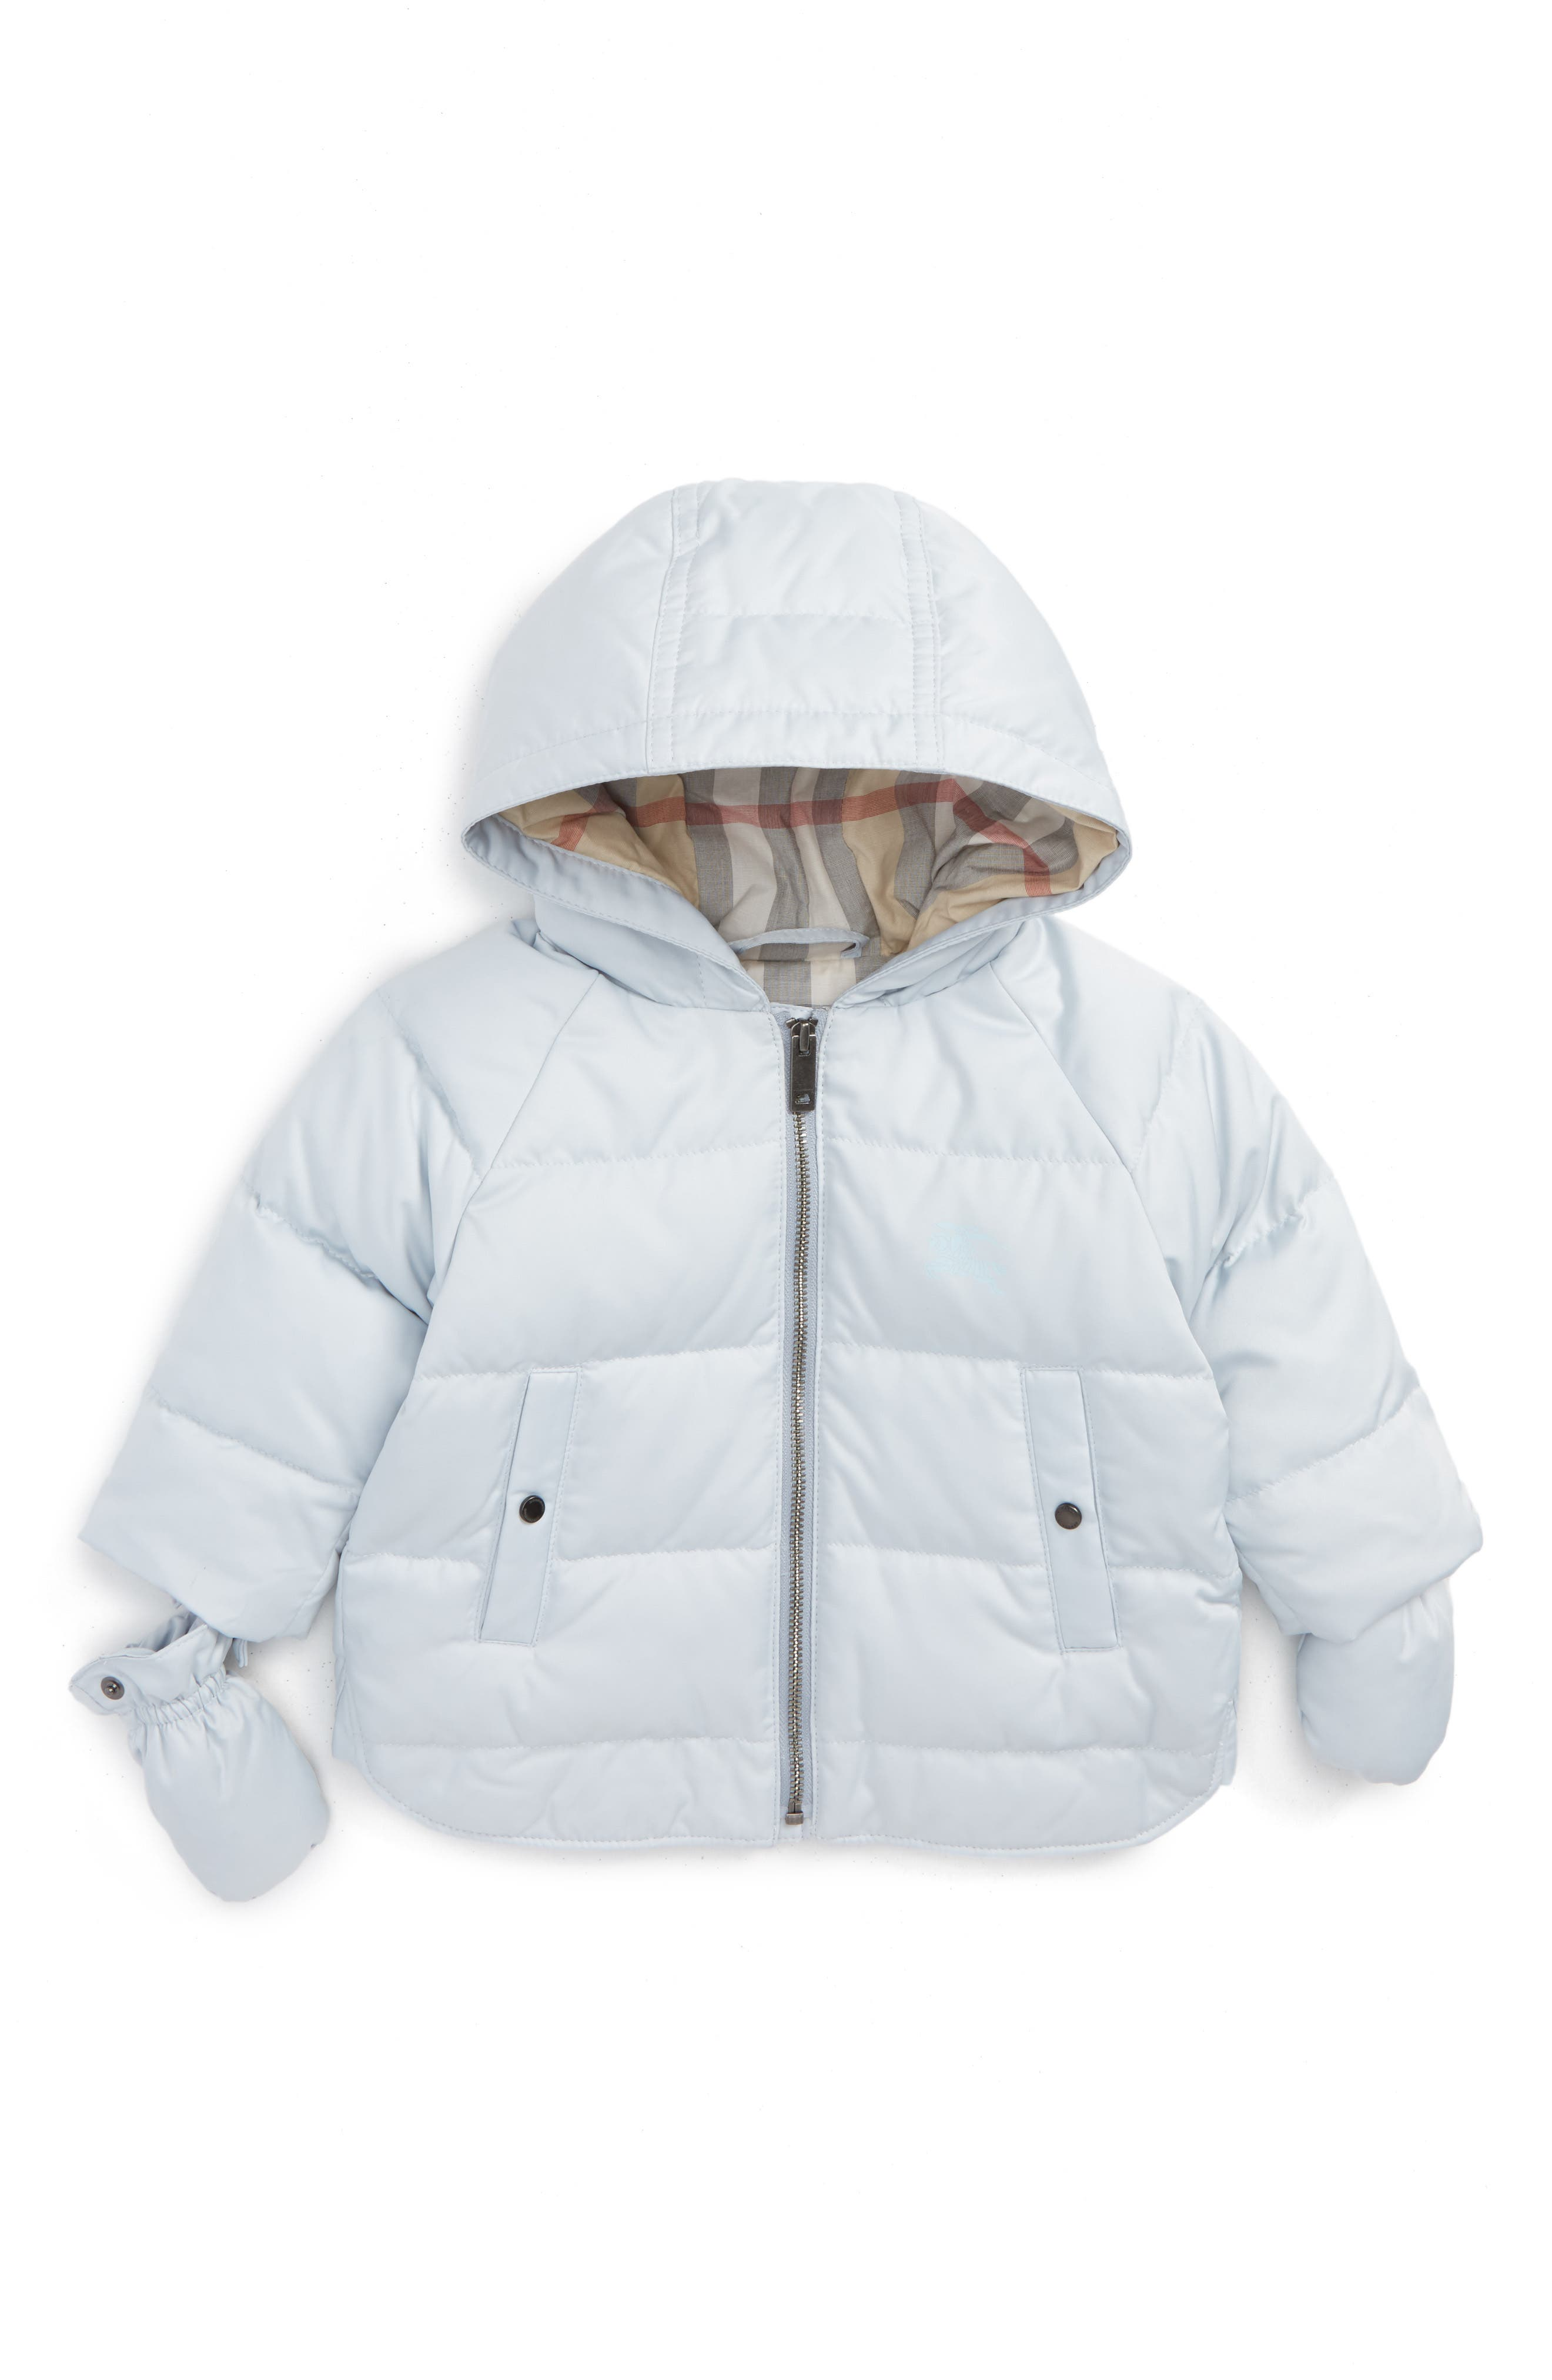 Alternate Image 1 Selected - Burberry Rilla Hooded Down Jacket (Baby)